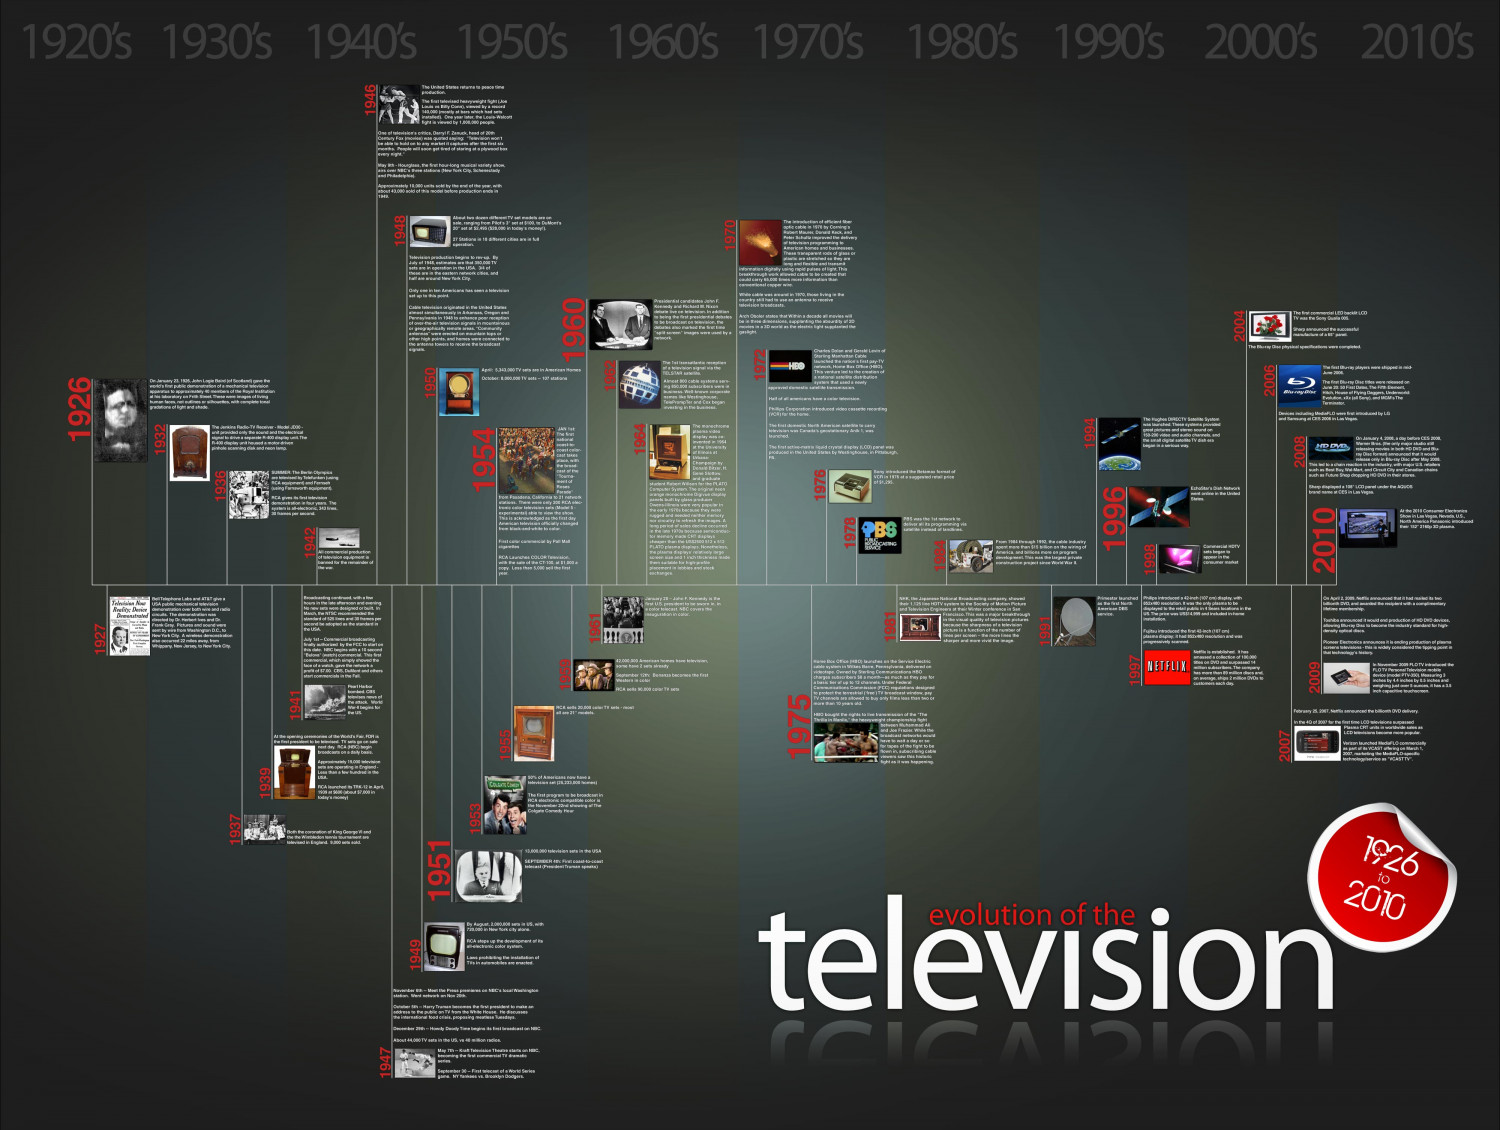 Evolution of the Television 1926 to 2010 Infographic